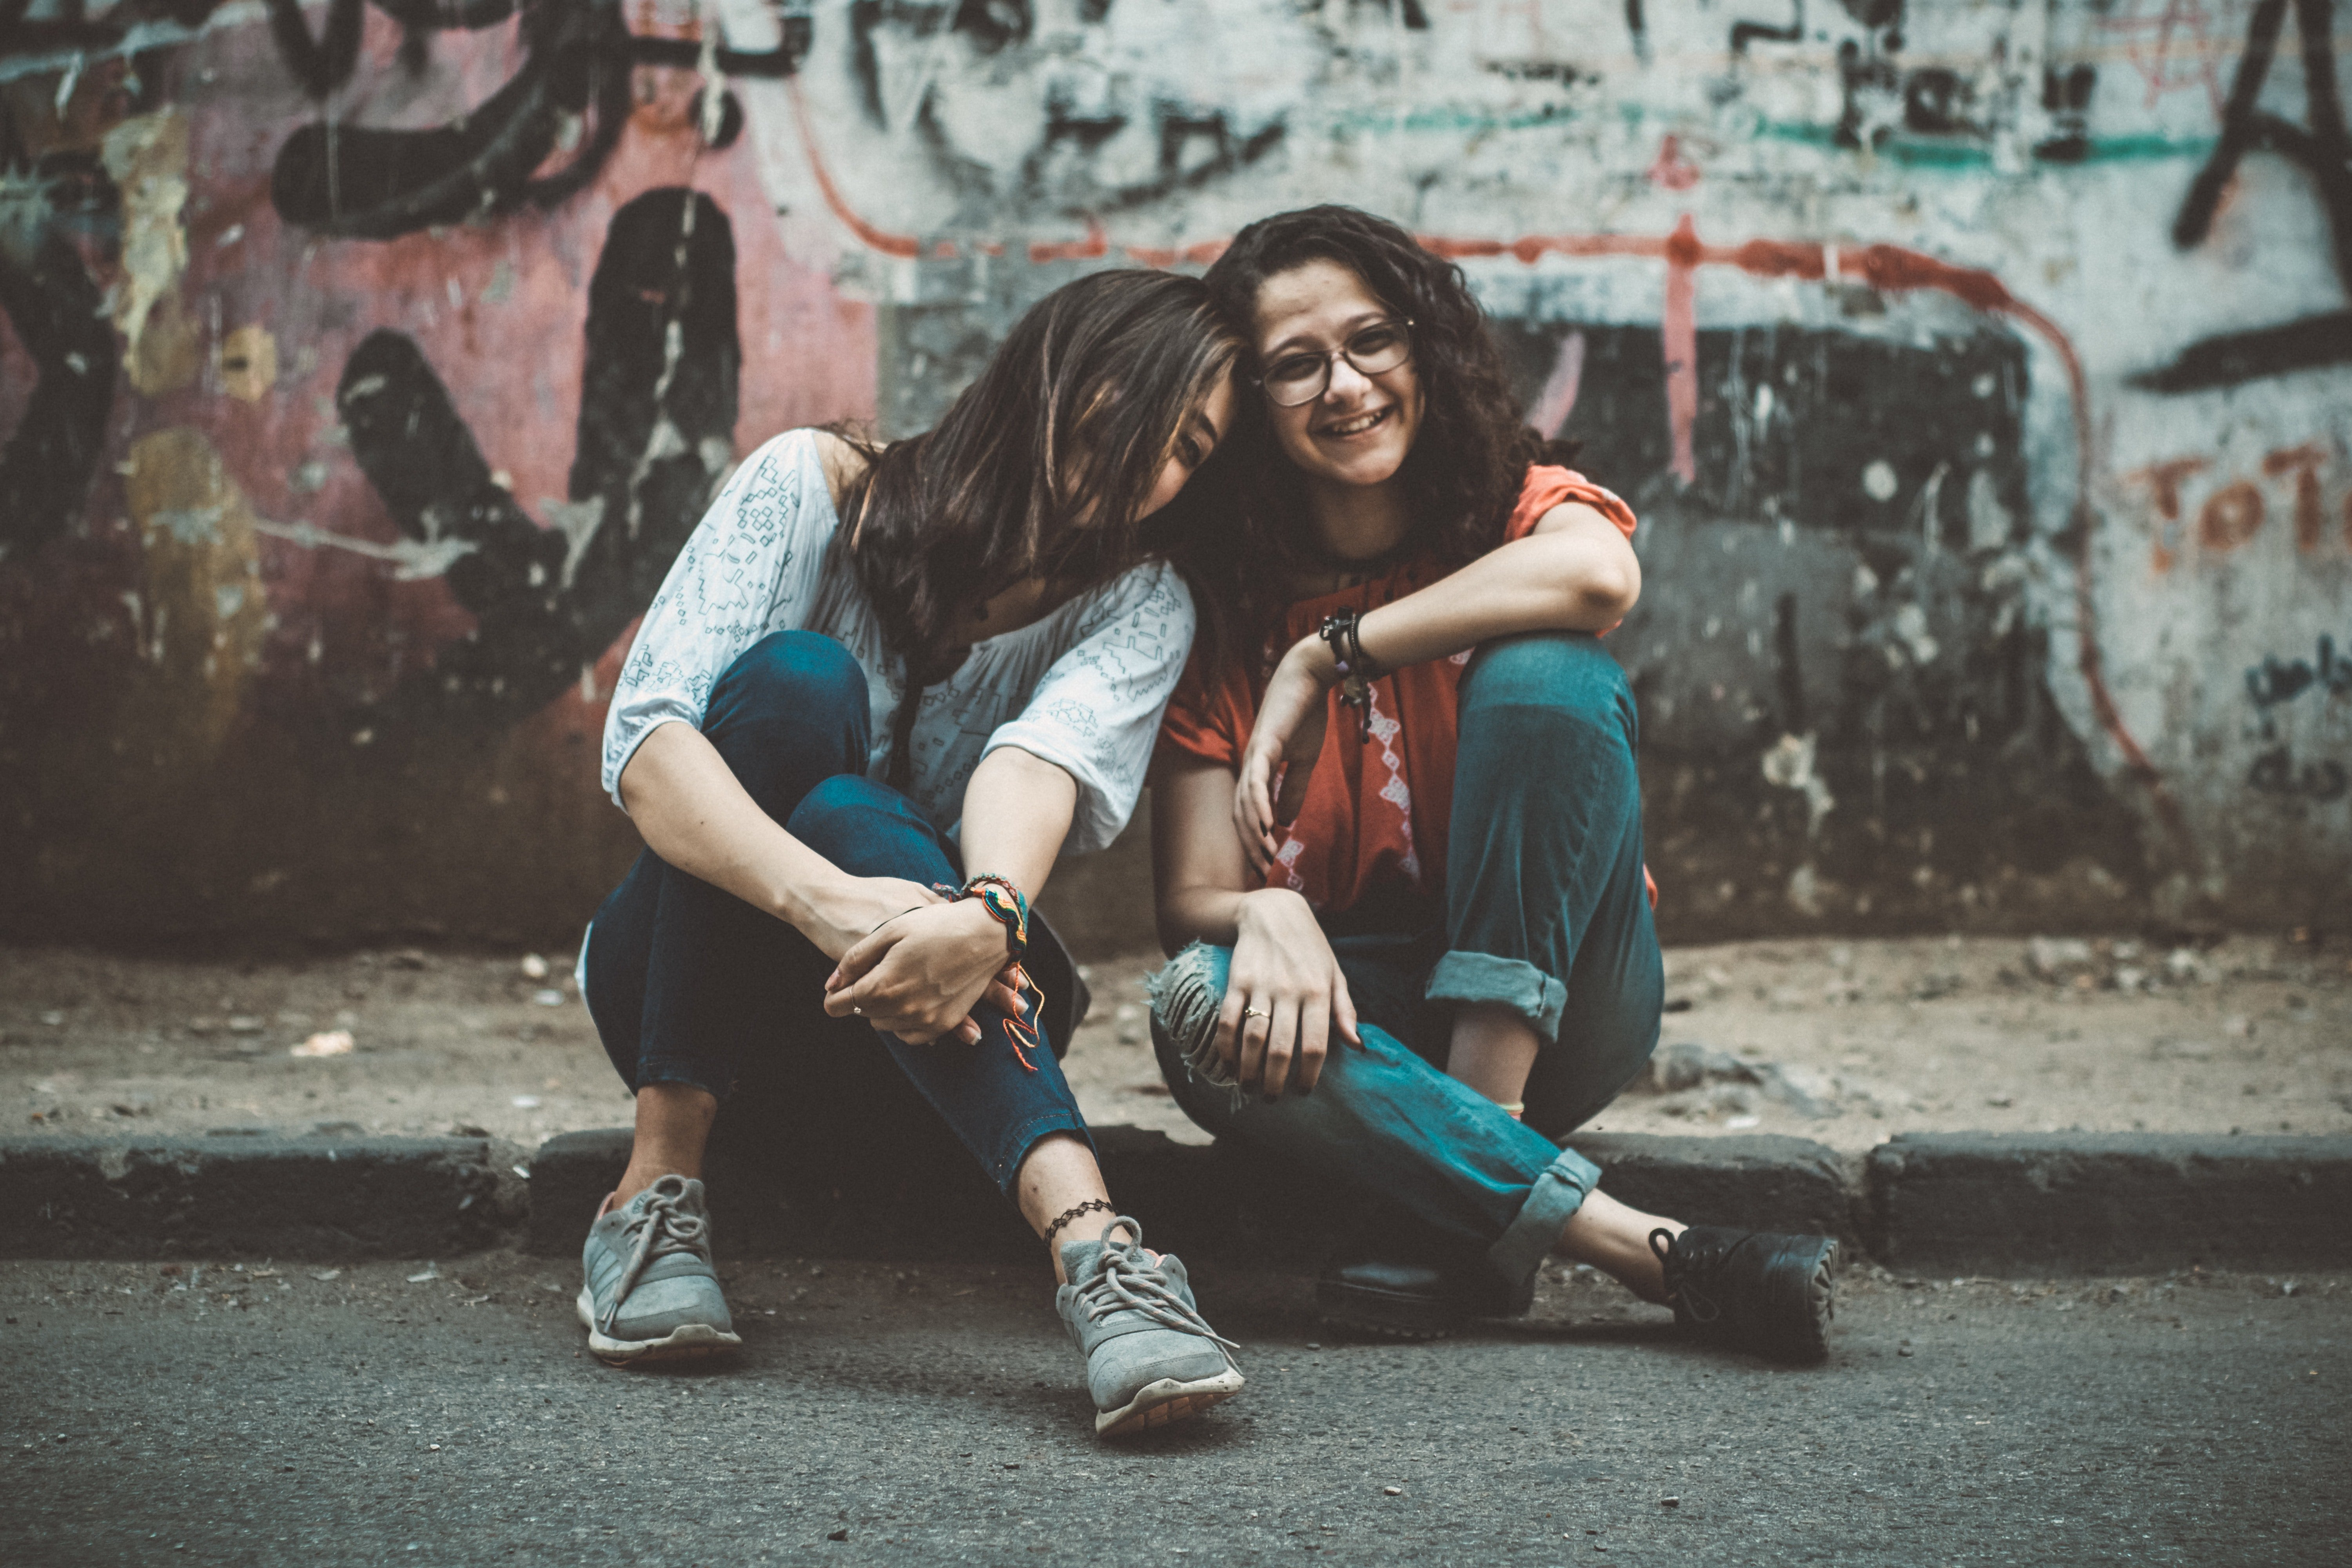 Two girls hanging out. | Source: Pexels/Bahaa A. Shawqi